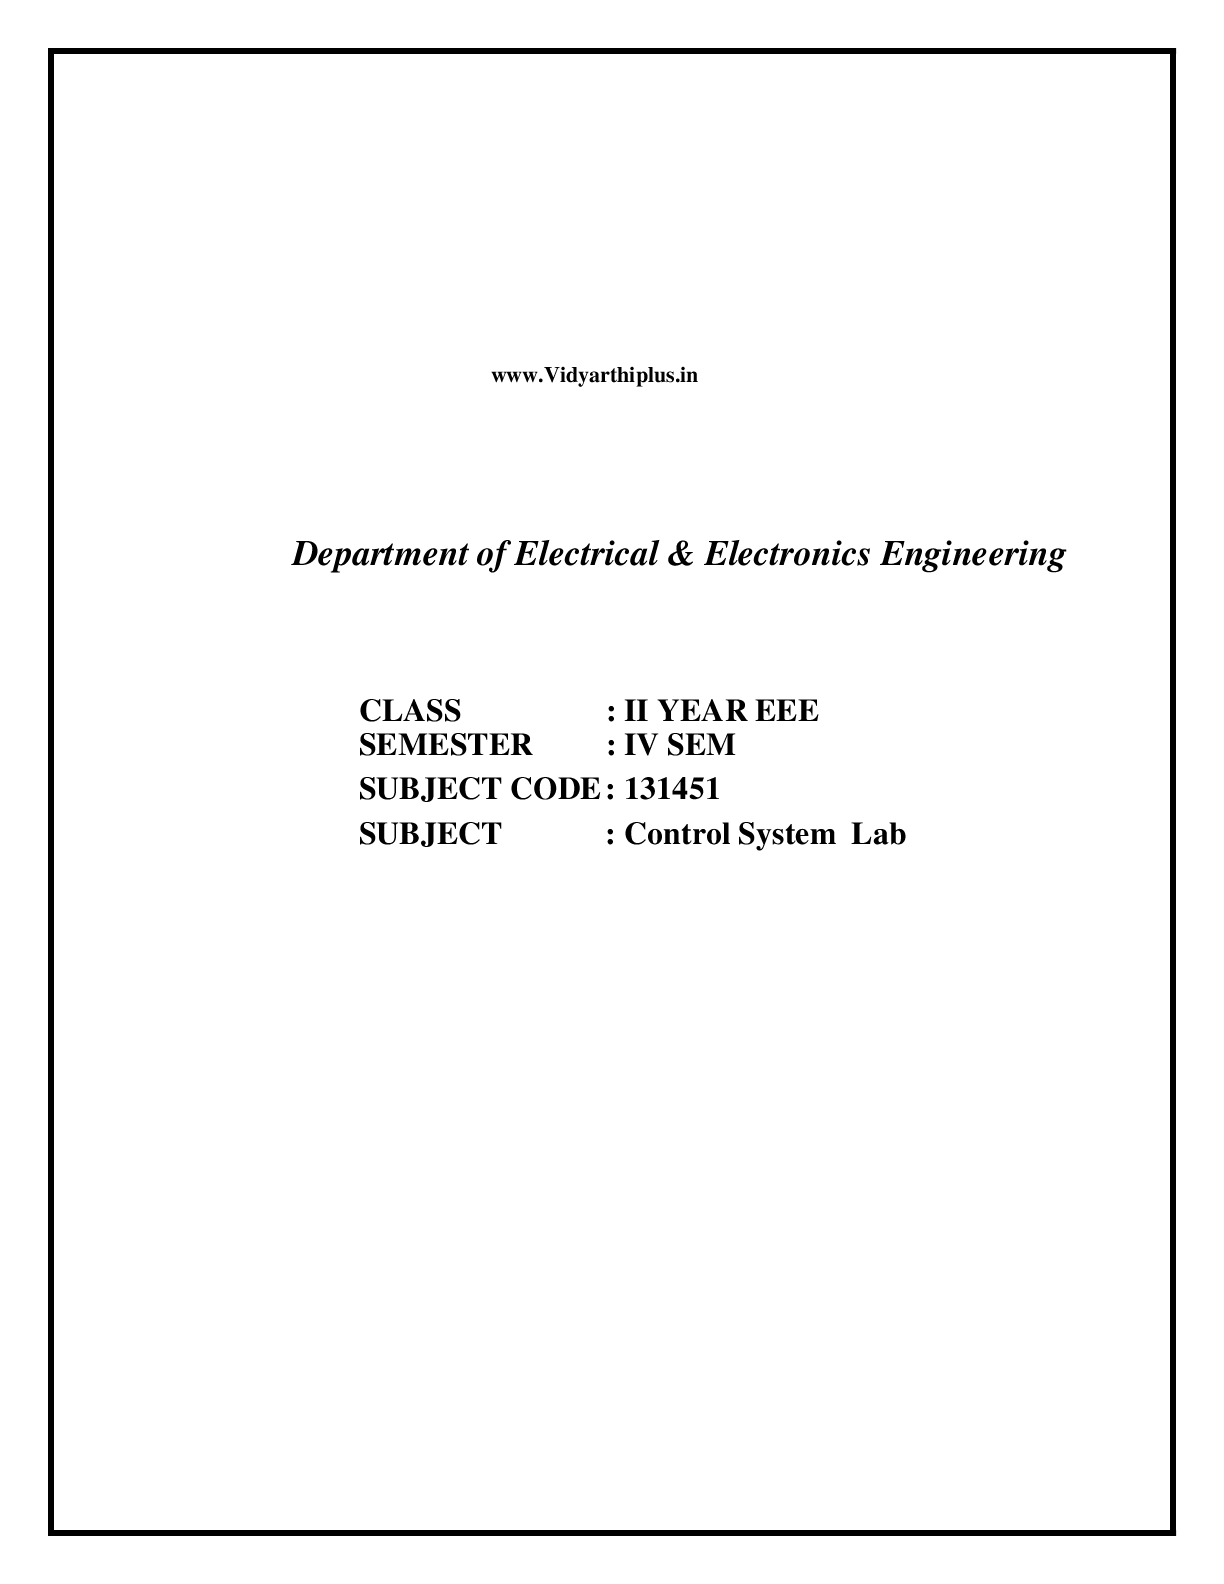 Anna University - Control System Lab Manual - 2012 Edition